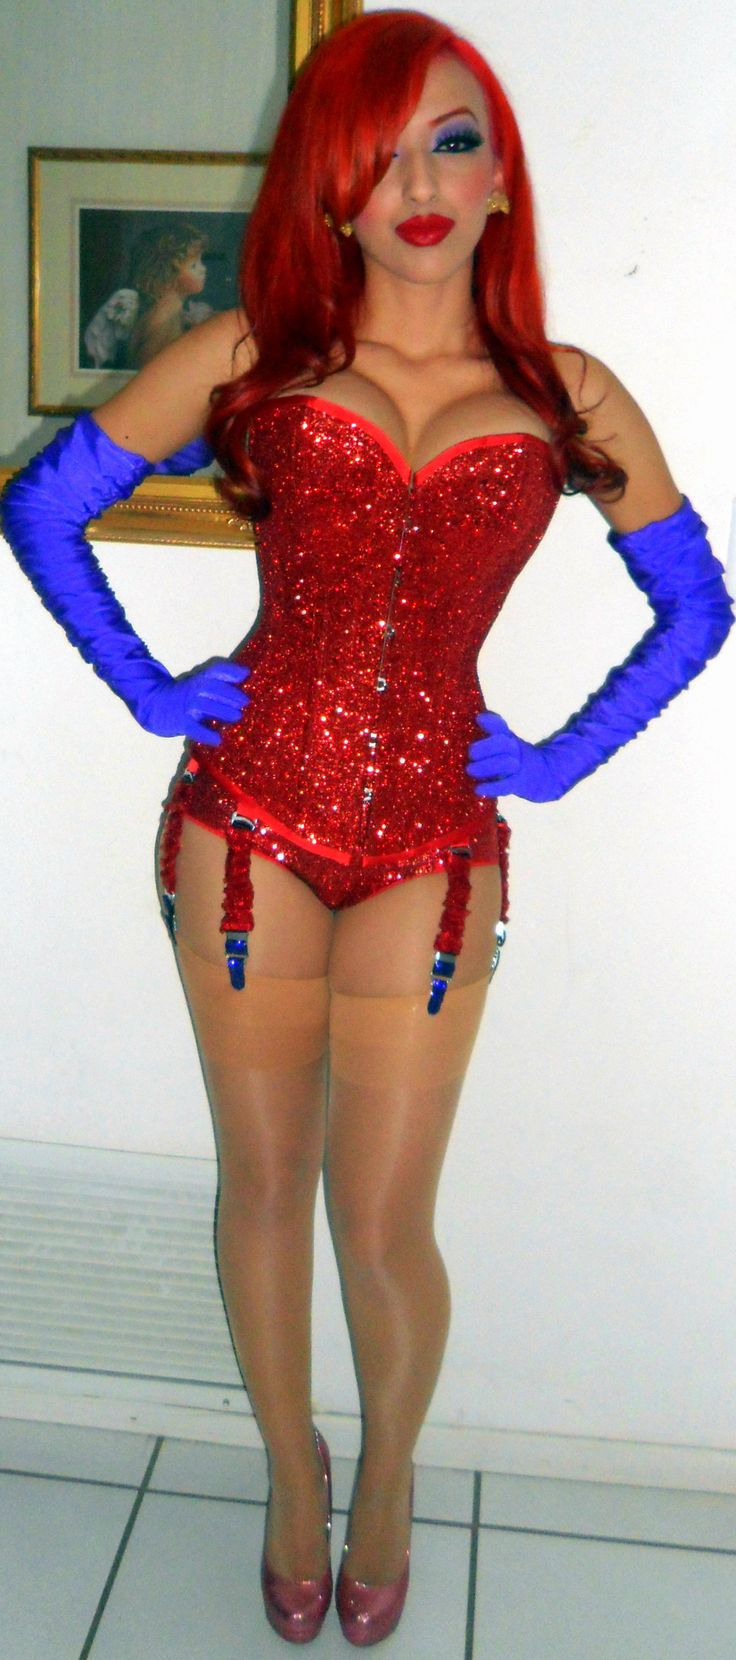 Jessica rabbit costume @Jeannette Clarke is that what you wanted? lol totally think u could wear this to dland.